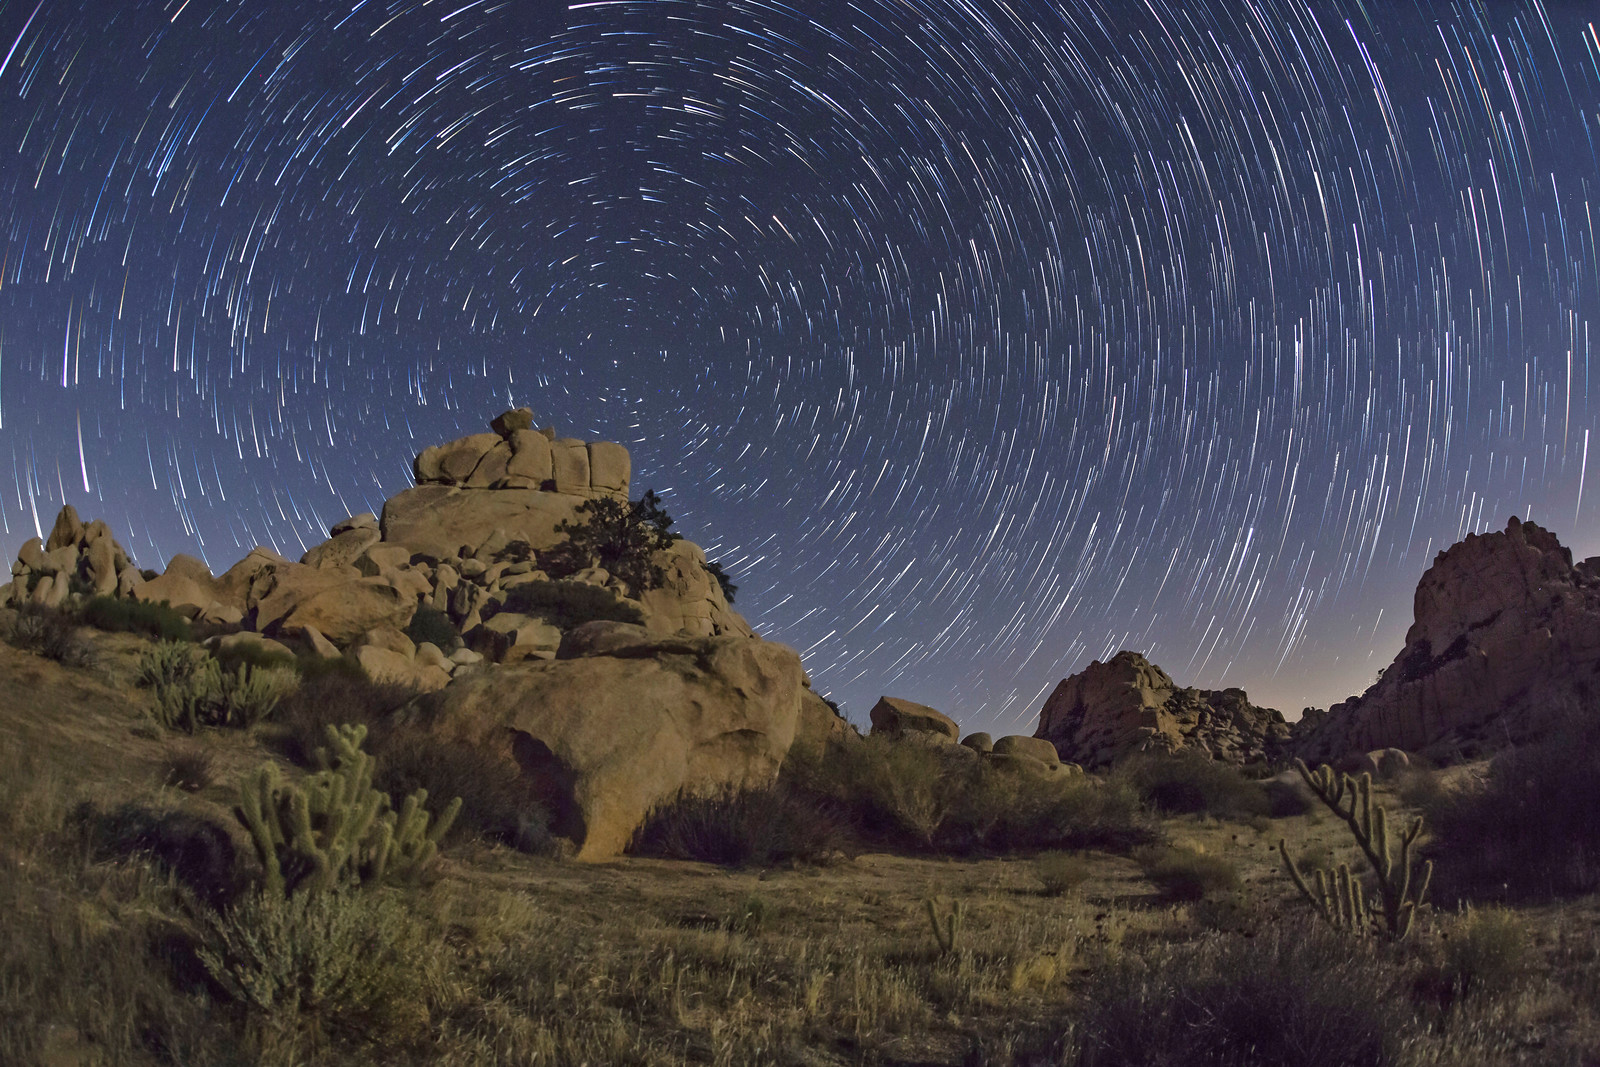 More Star Trails at San Diego's Valley of the Moon